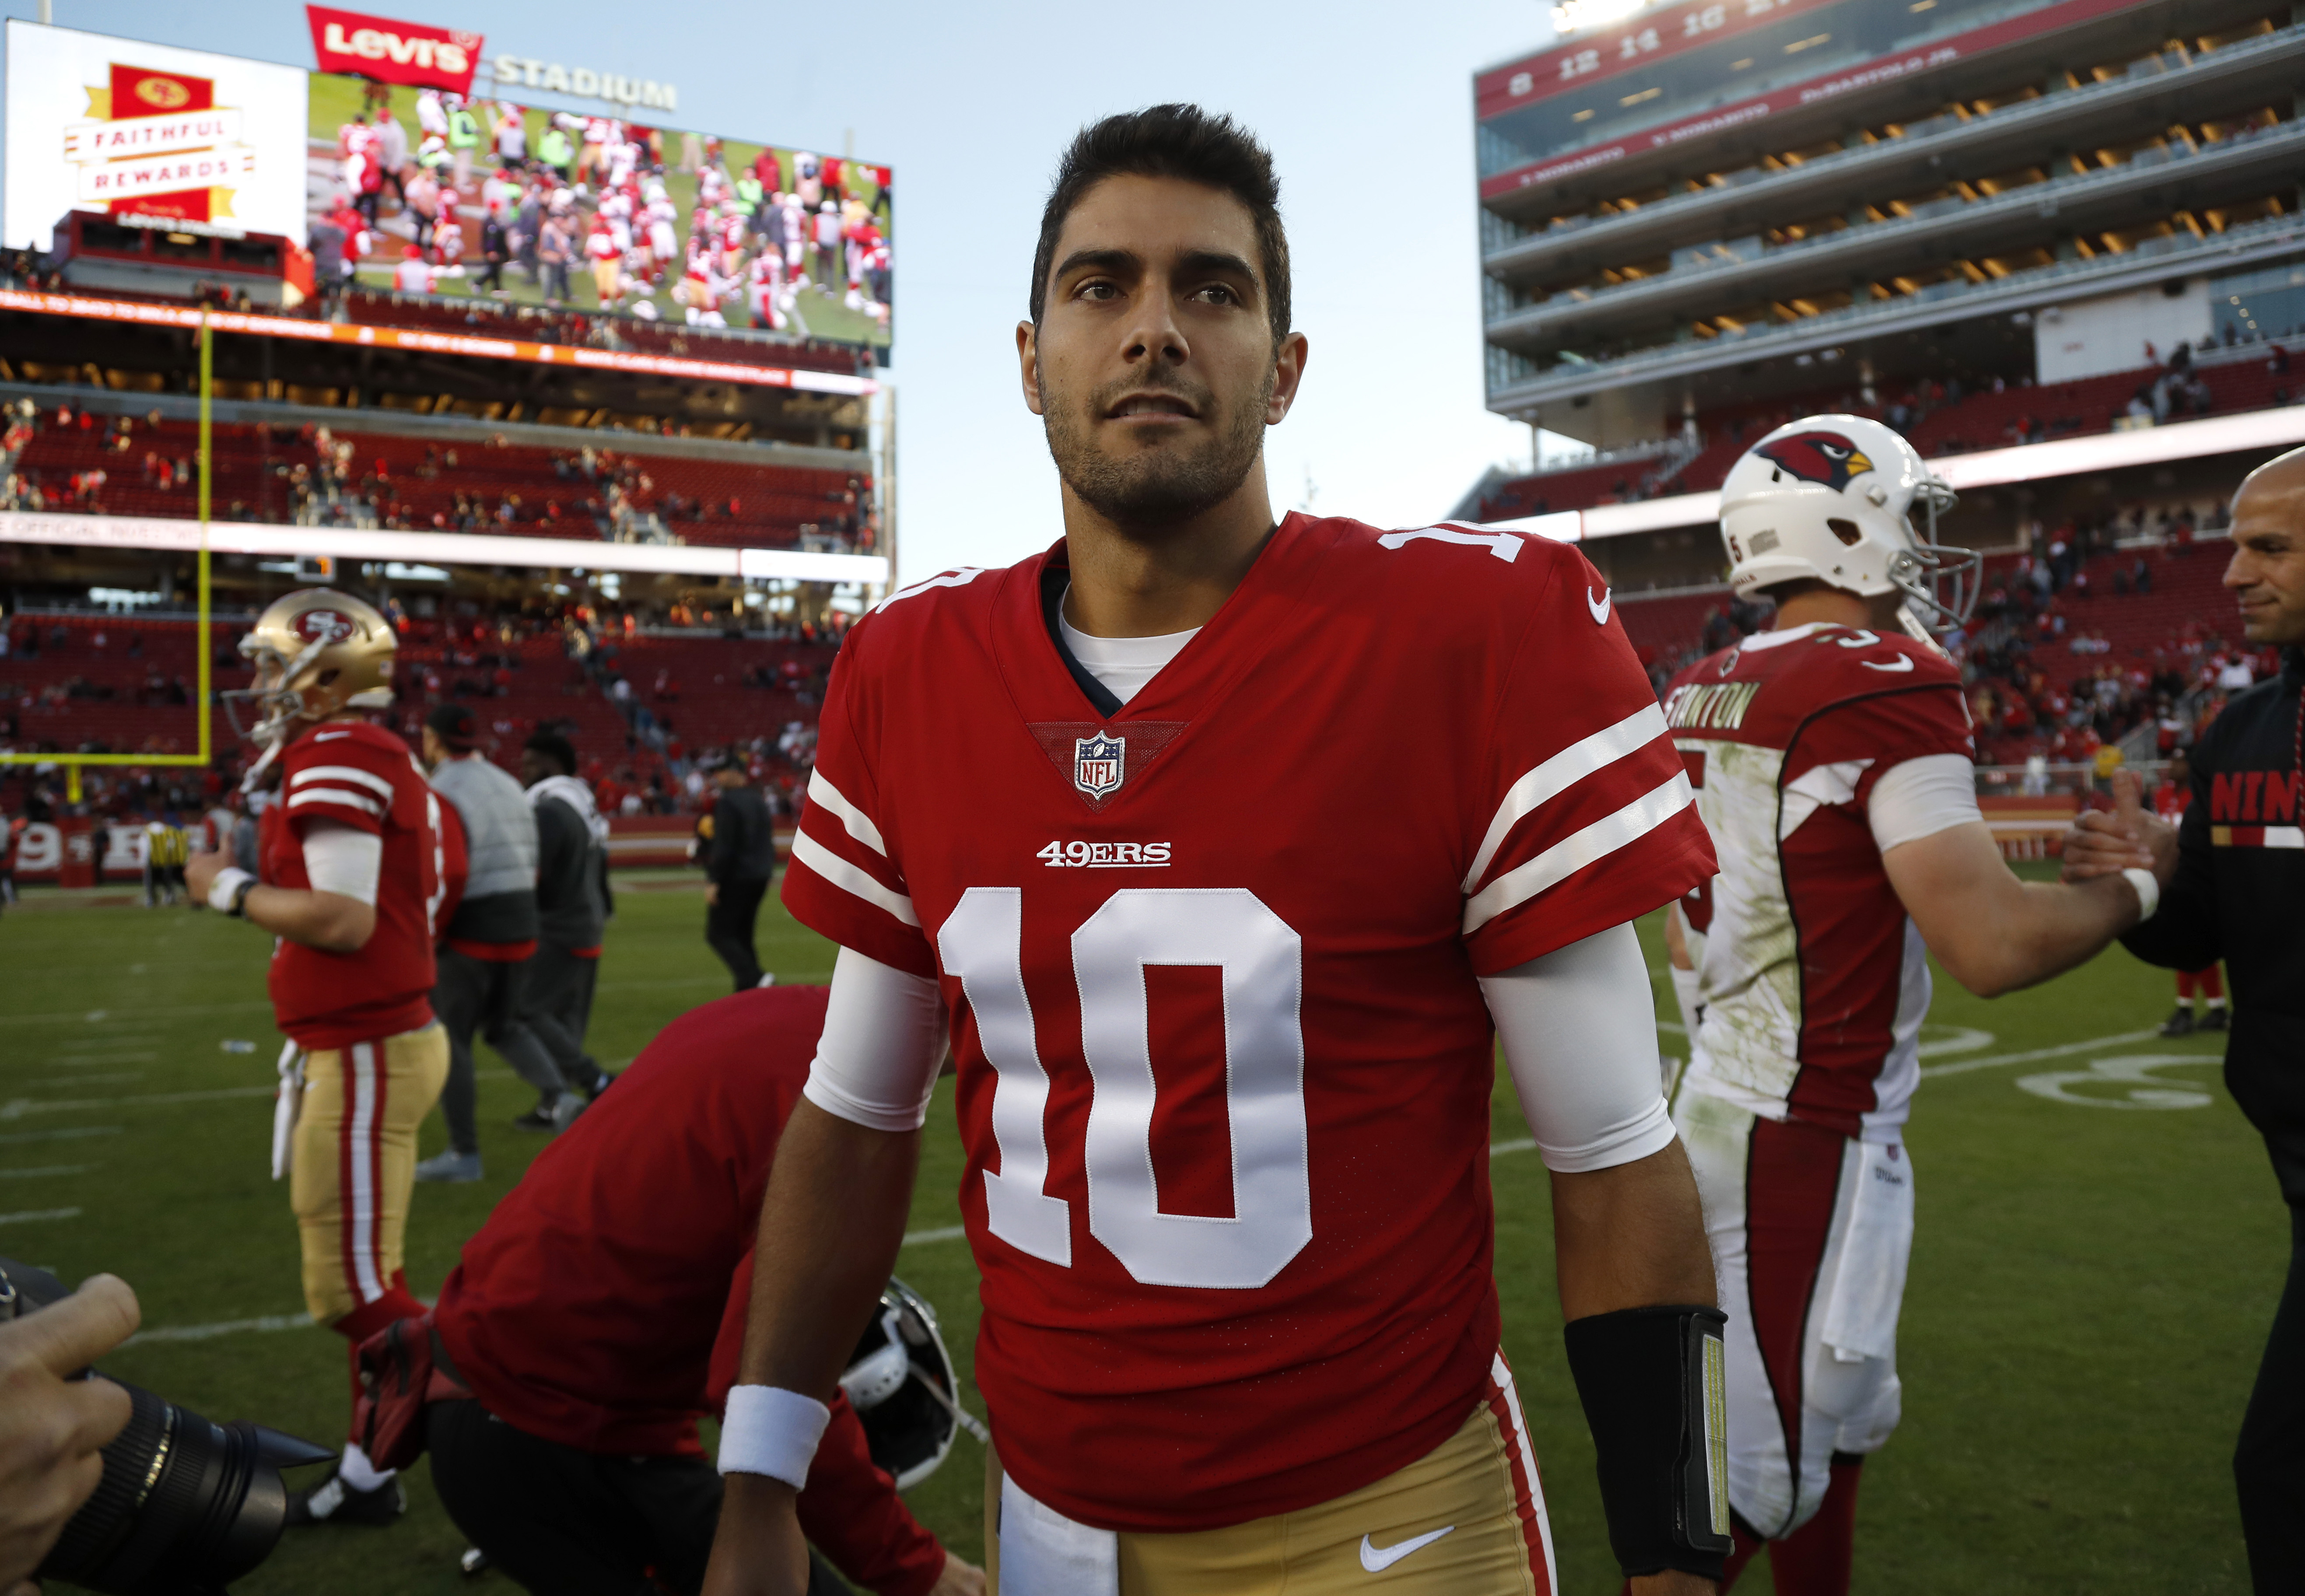 San Francisco 49ers Jimmy Garoppolo walks on the field following the 49ers 20-10 loss against the Arizona Cardinals for their NFL game at Levi's Stadium in Santa Clara Calif. on Sunday Nov. 5 2017